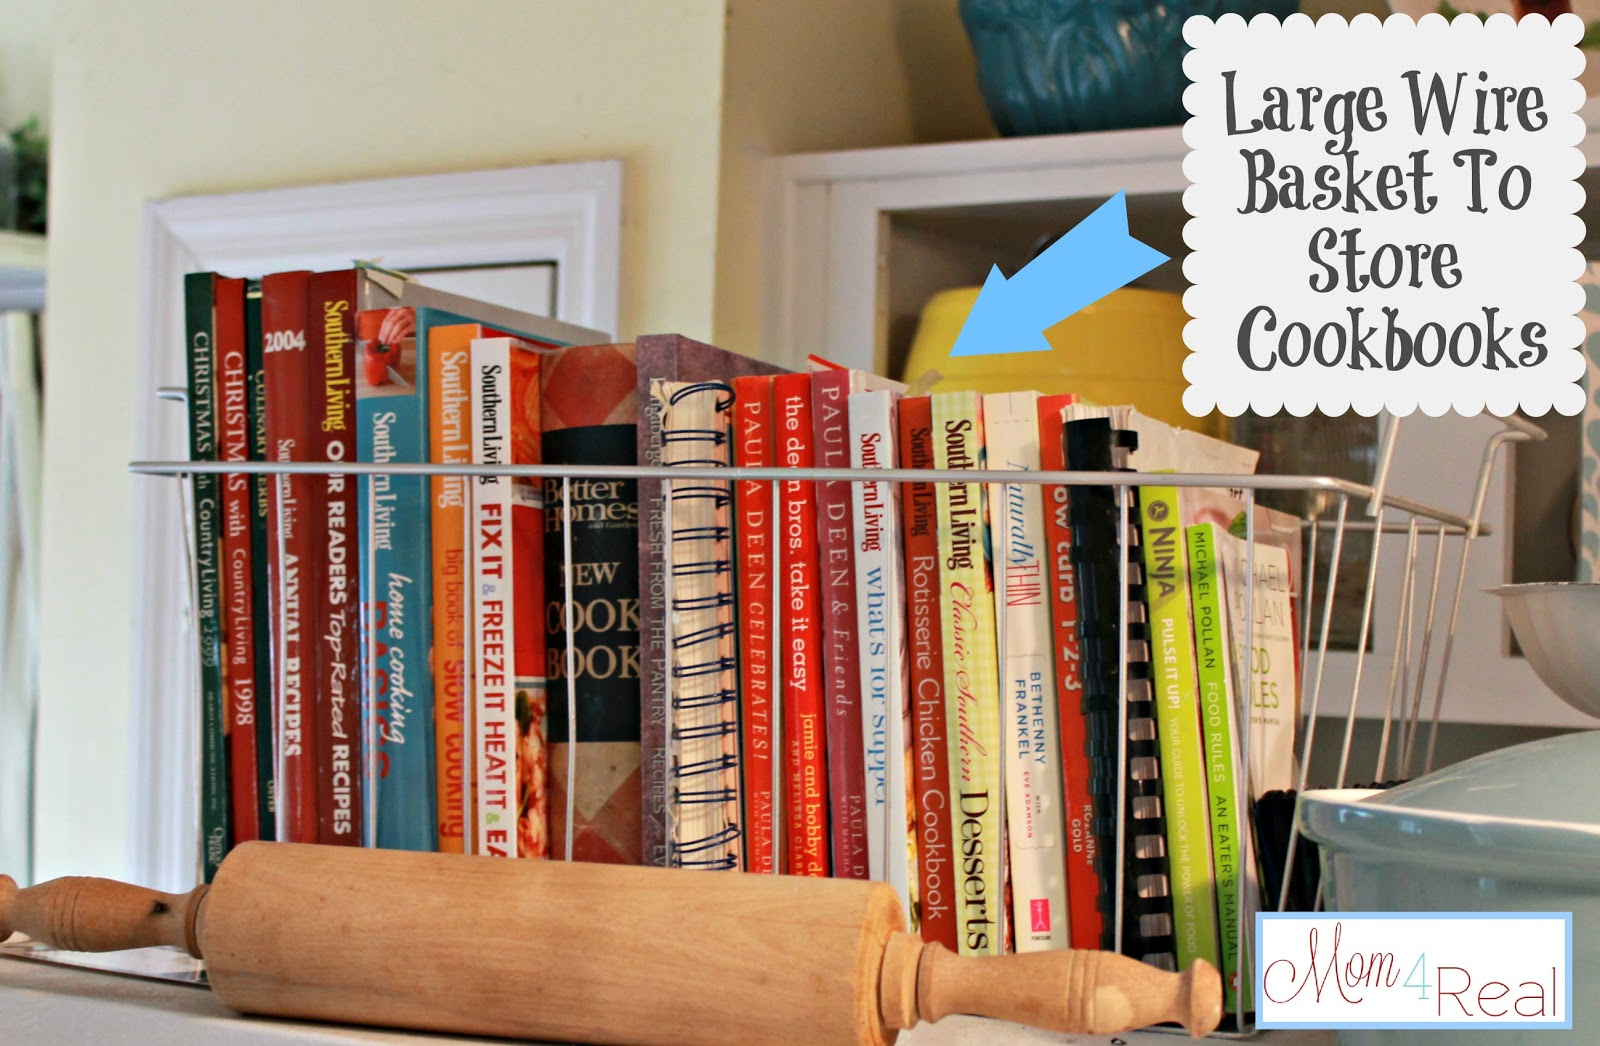 Store cookbooks in a wire basket on top of your refrigerator!